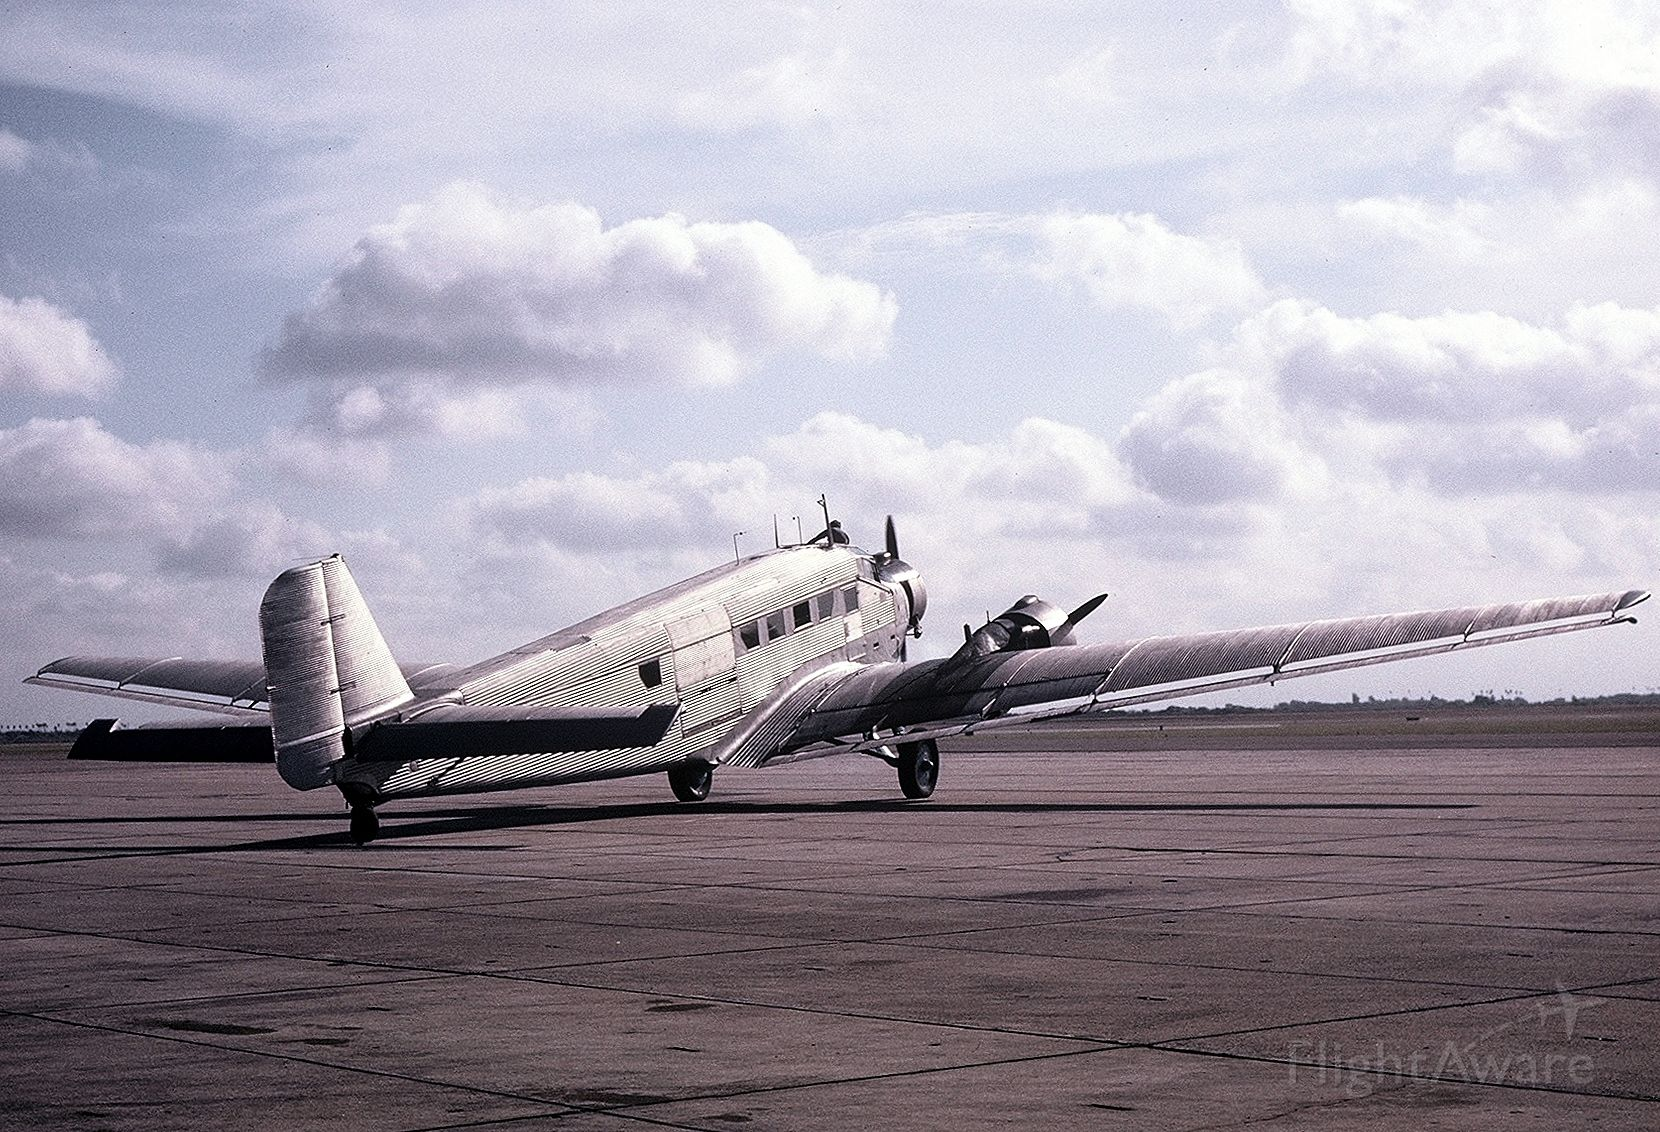 N99059 — - This JU-52 had just arrived from England and is seen on the ramp at the Commemorative Air Force.